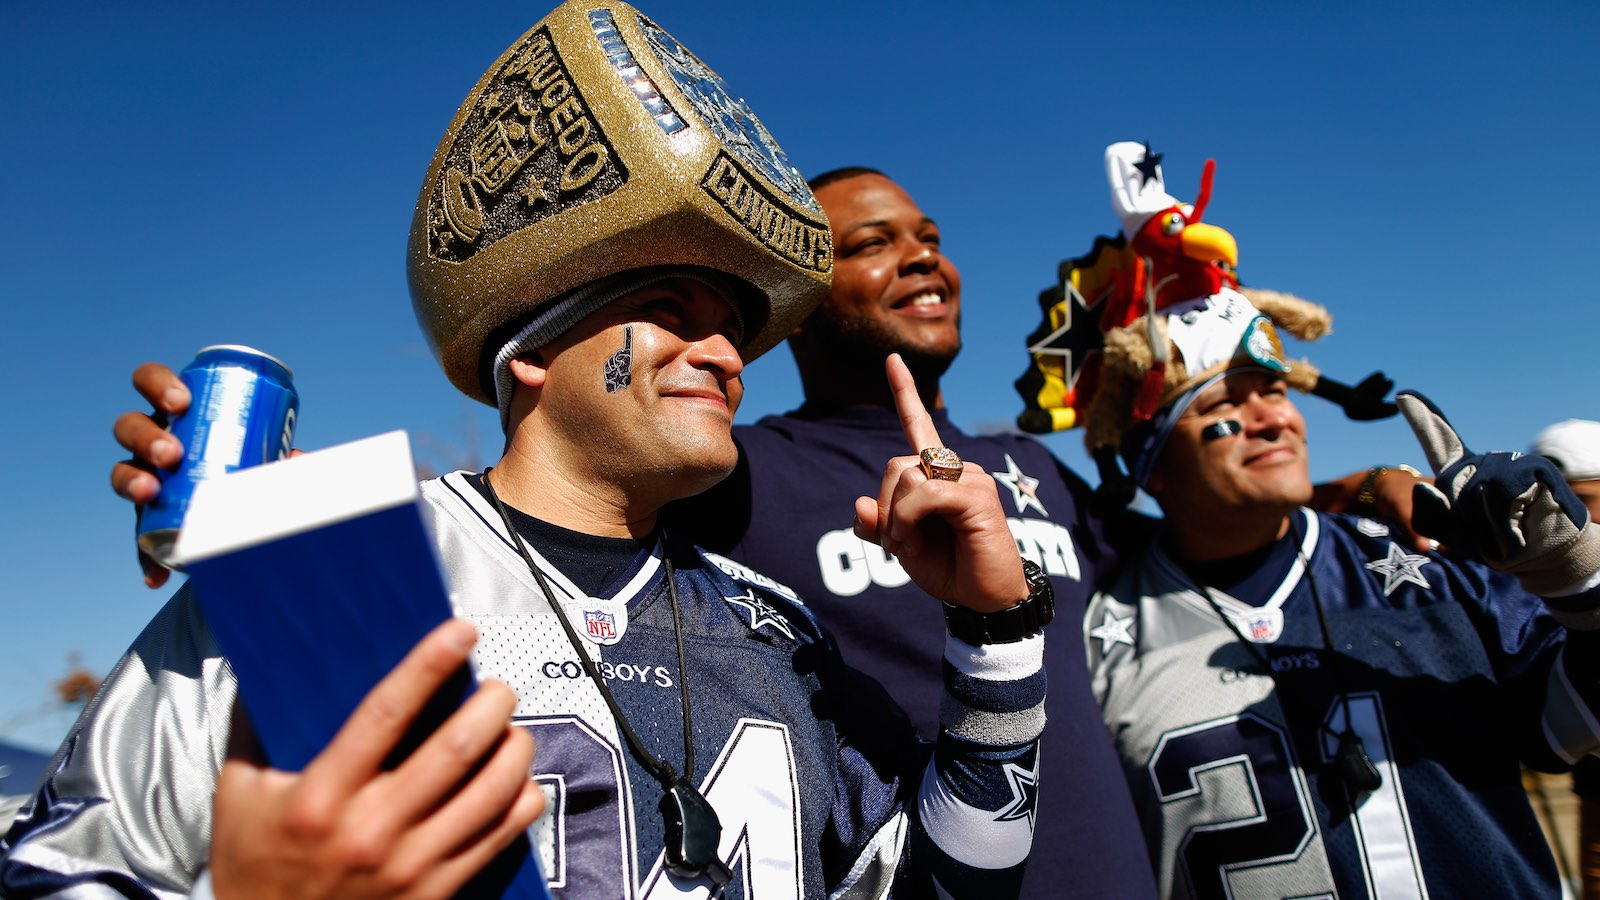 Cowboys Headlines - Are Cowboys Fans Being Too Overly Optimistic?